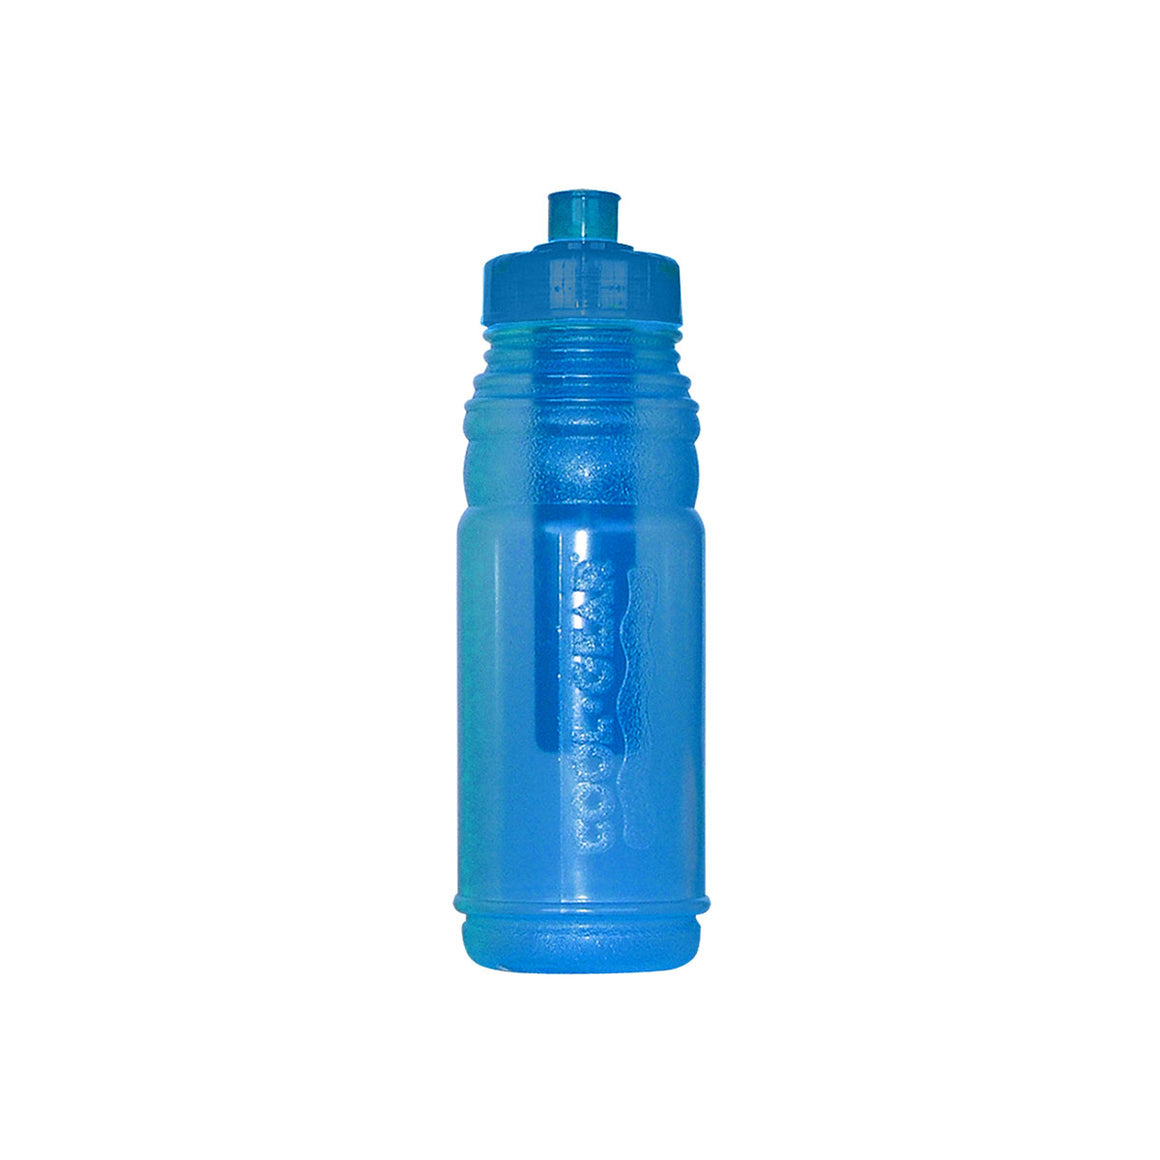 22oz relay water bottle in blue, green, pink and purple at Cool Gear Water Bottles